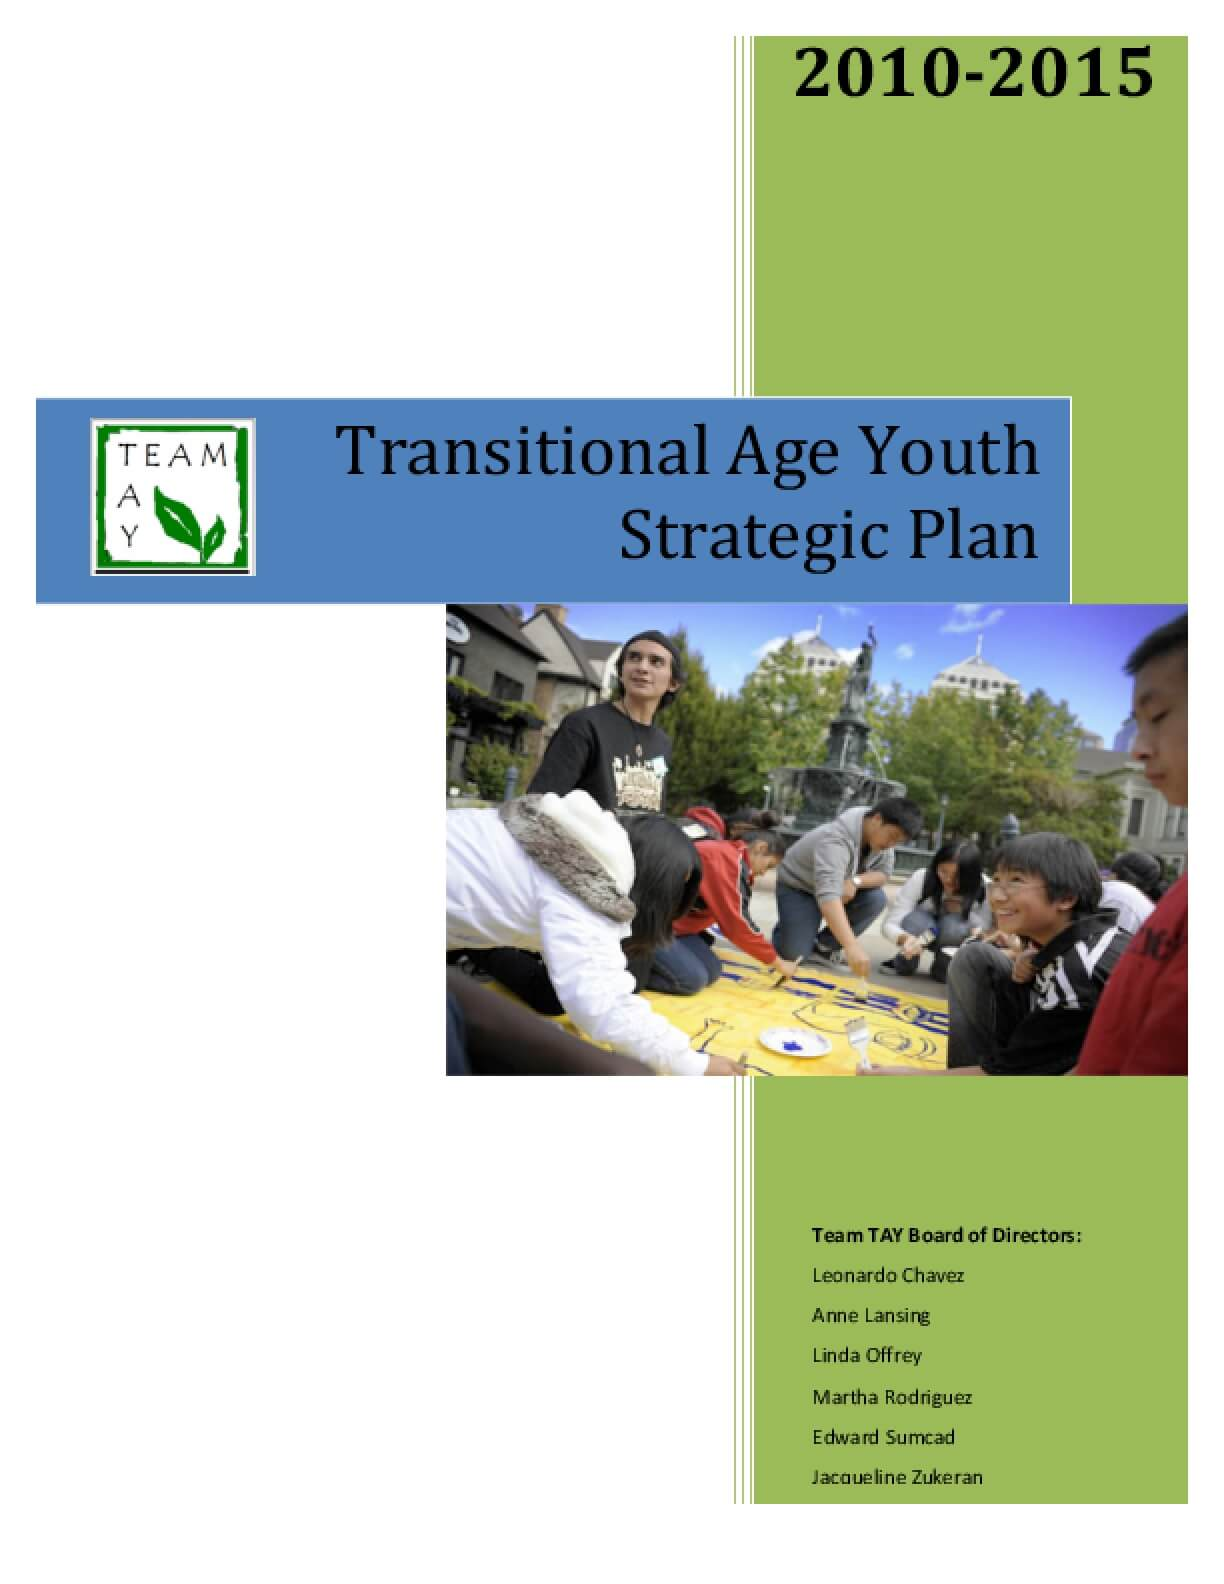 Transitional Age Youth Strategic Plan